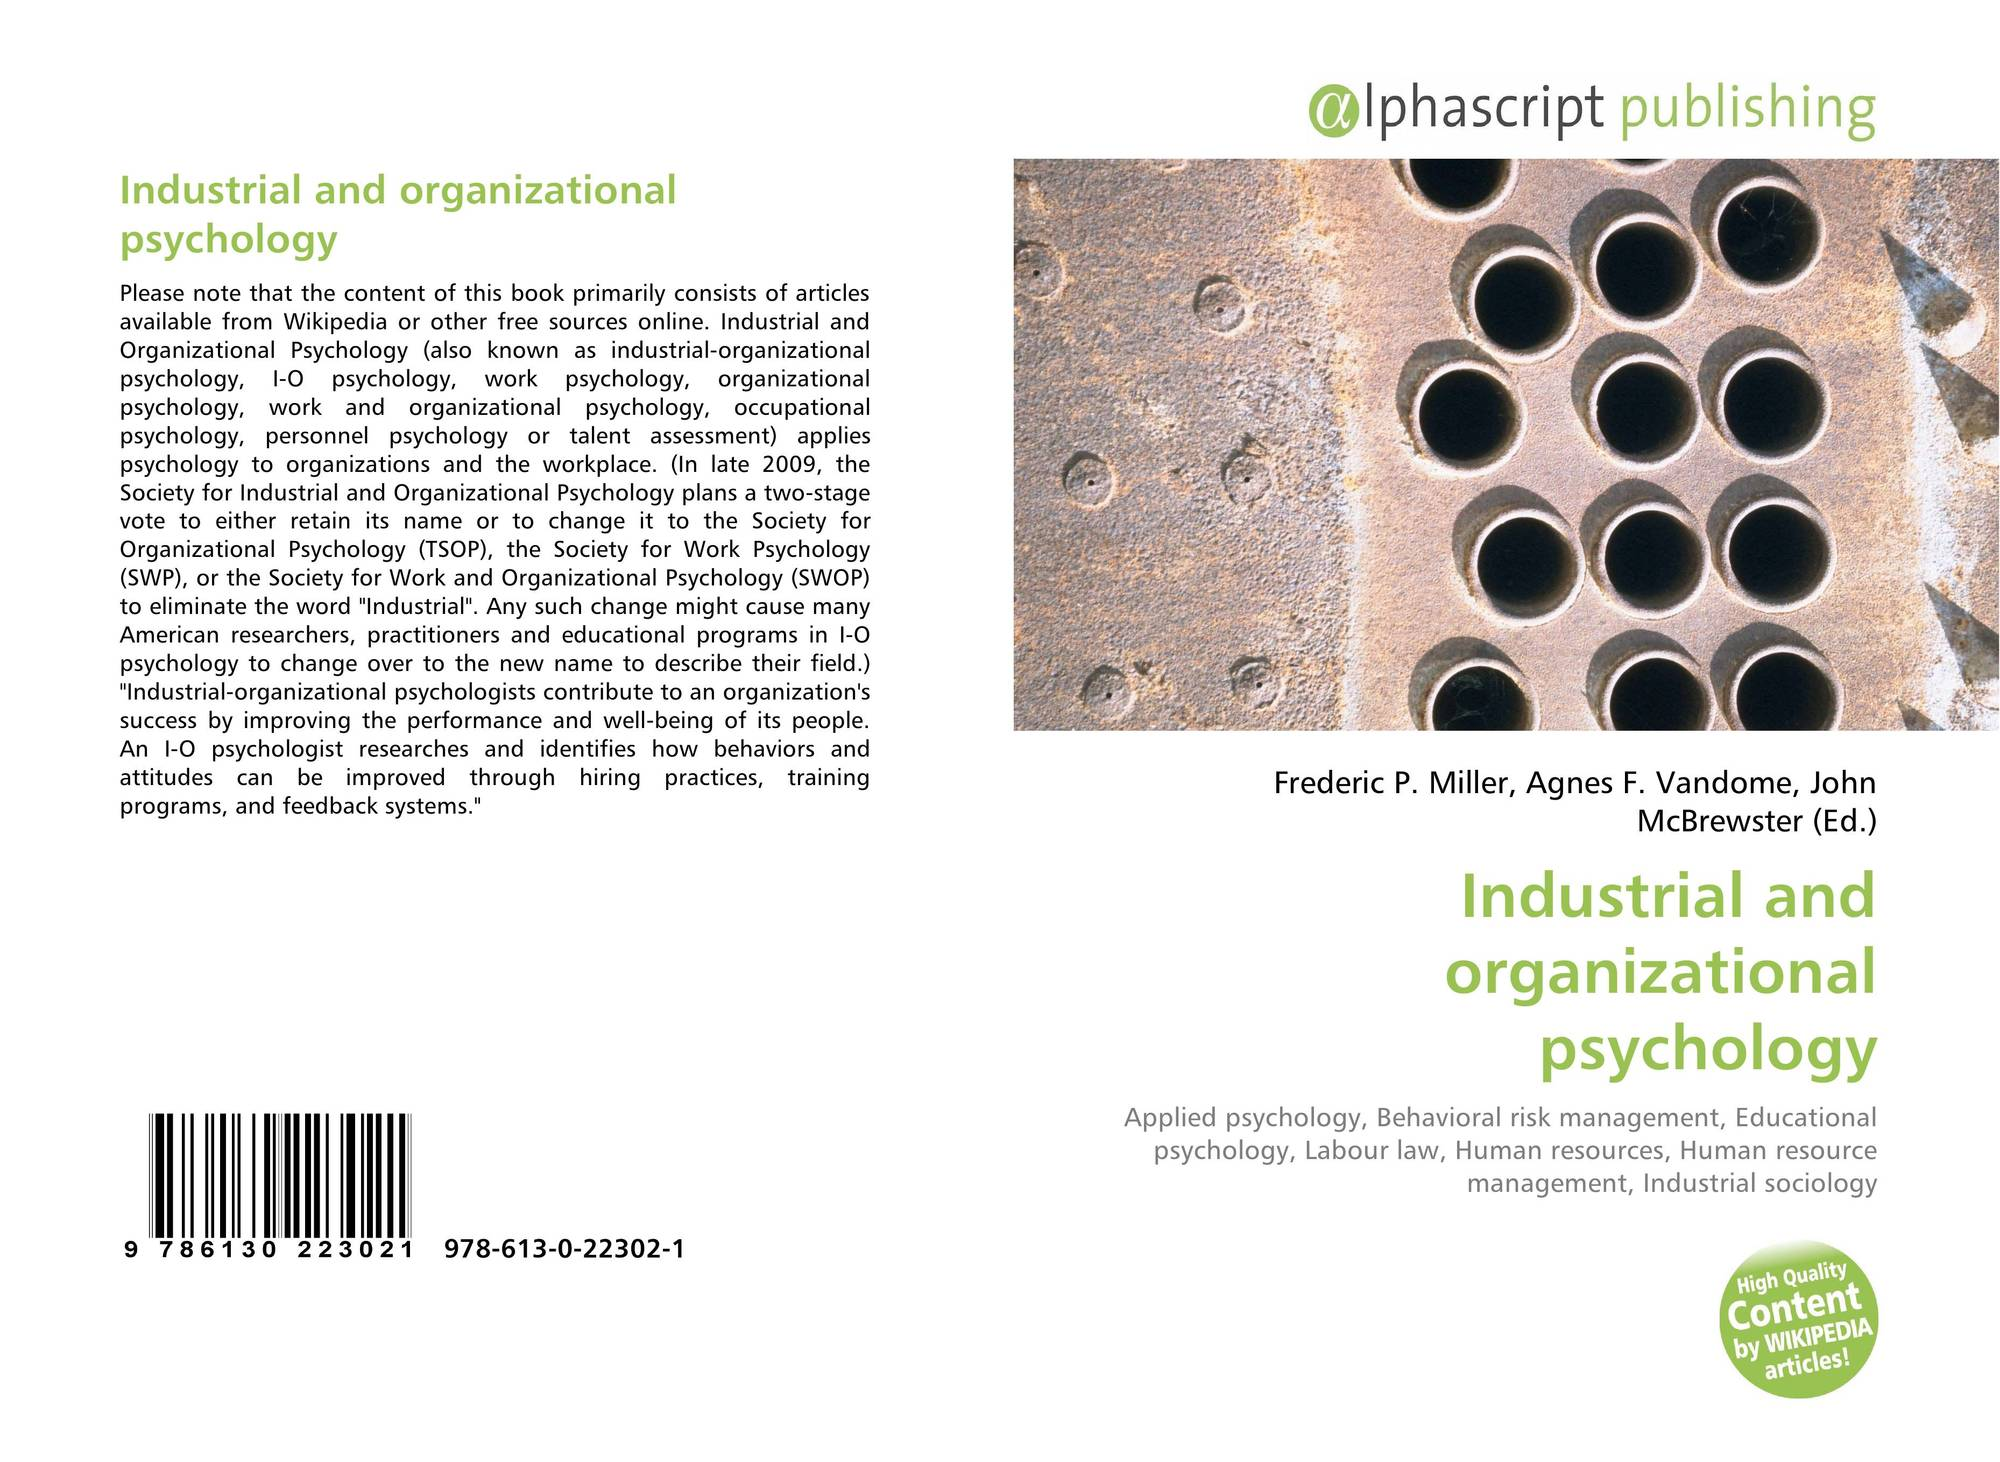 definition and history of industrial psychology An industrial society is one in which technologies of mass production are used to make vast amounts of goods in factories, and in which this is the dominant mode of production and organizer of social life.